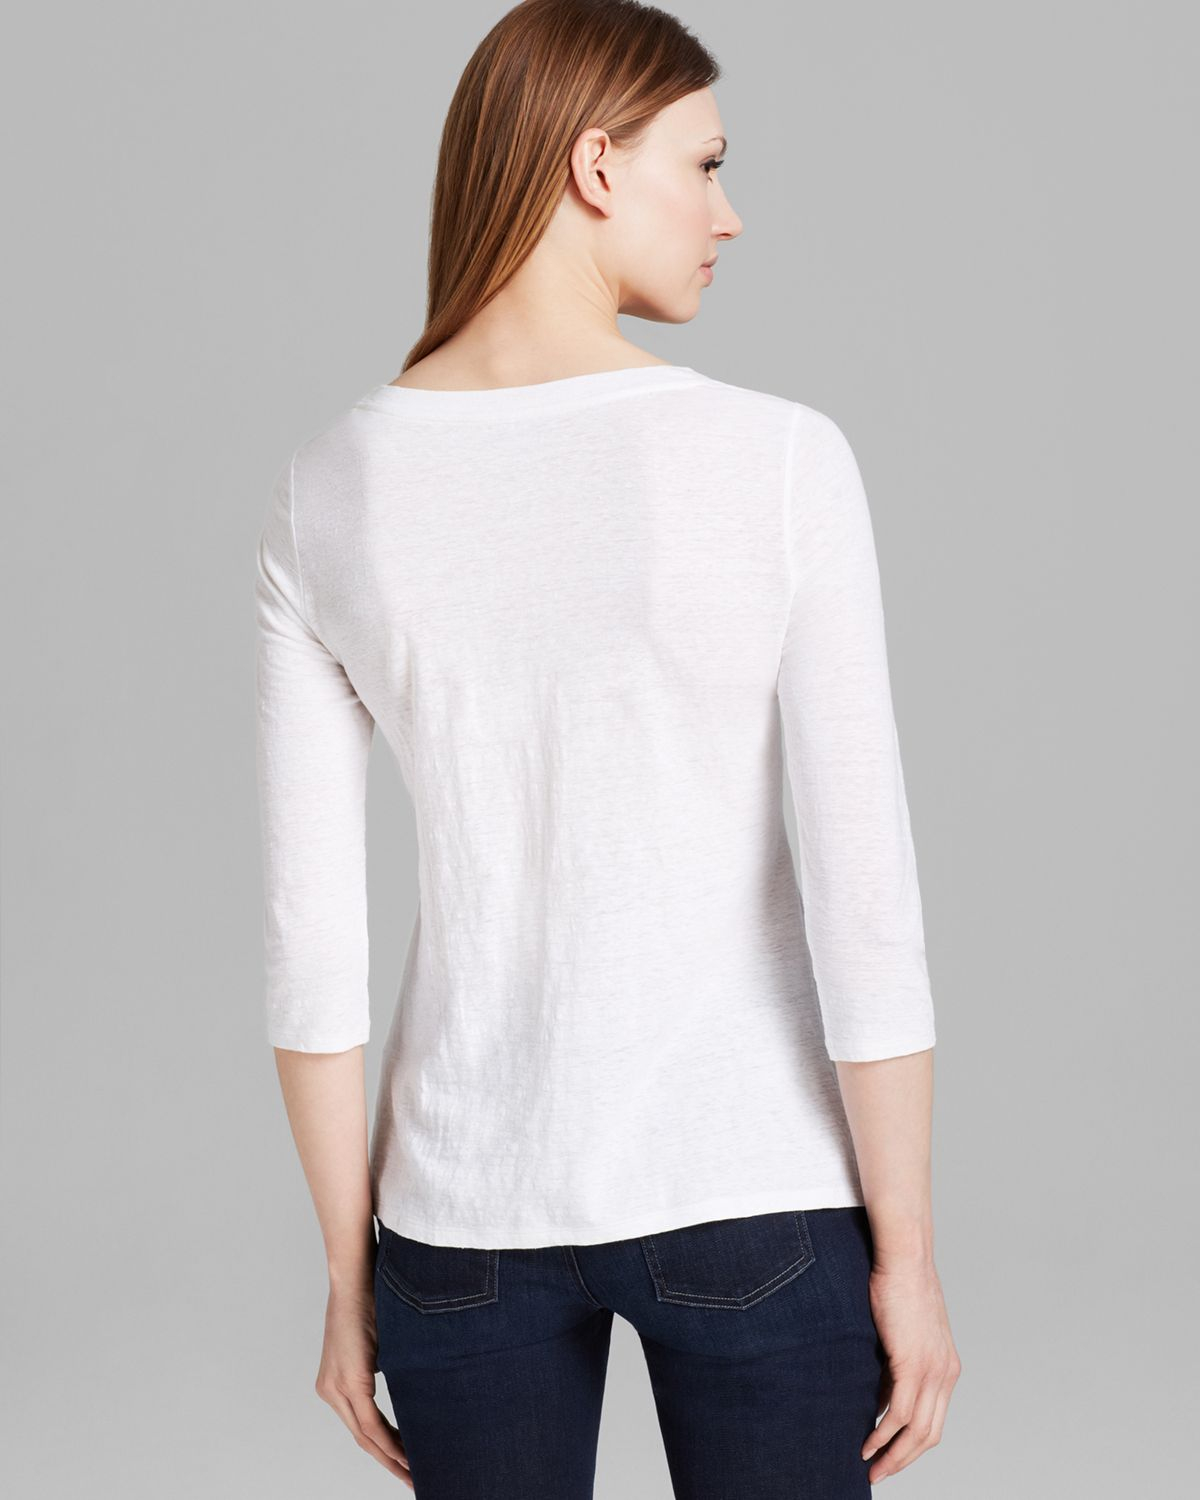 Eileen Fisher Scoop Neck Three Quarter Sleeve Top In White